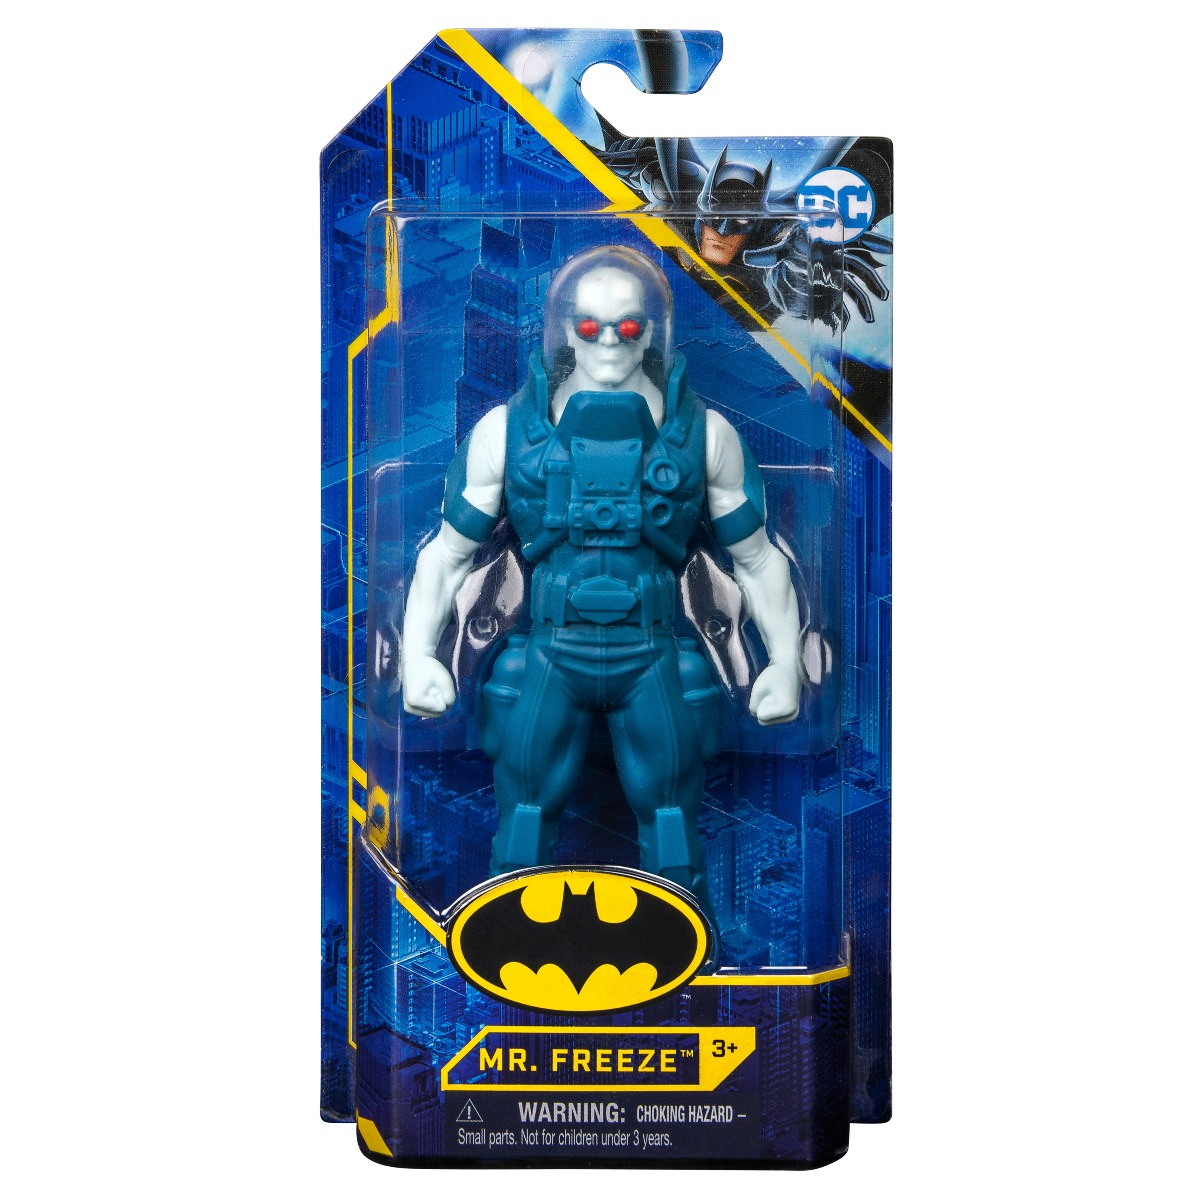 Figurina articulata Batman, Mr Freeze, 15 cm, 20130943